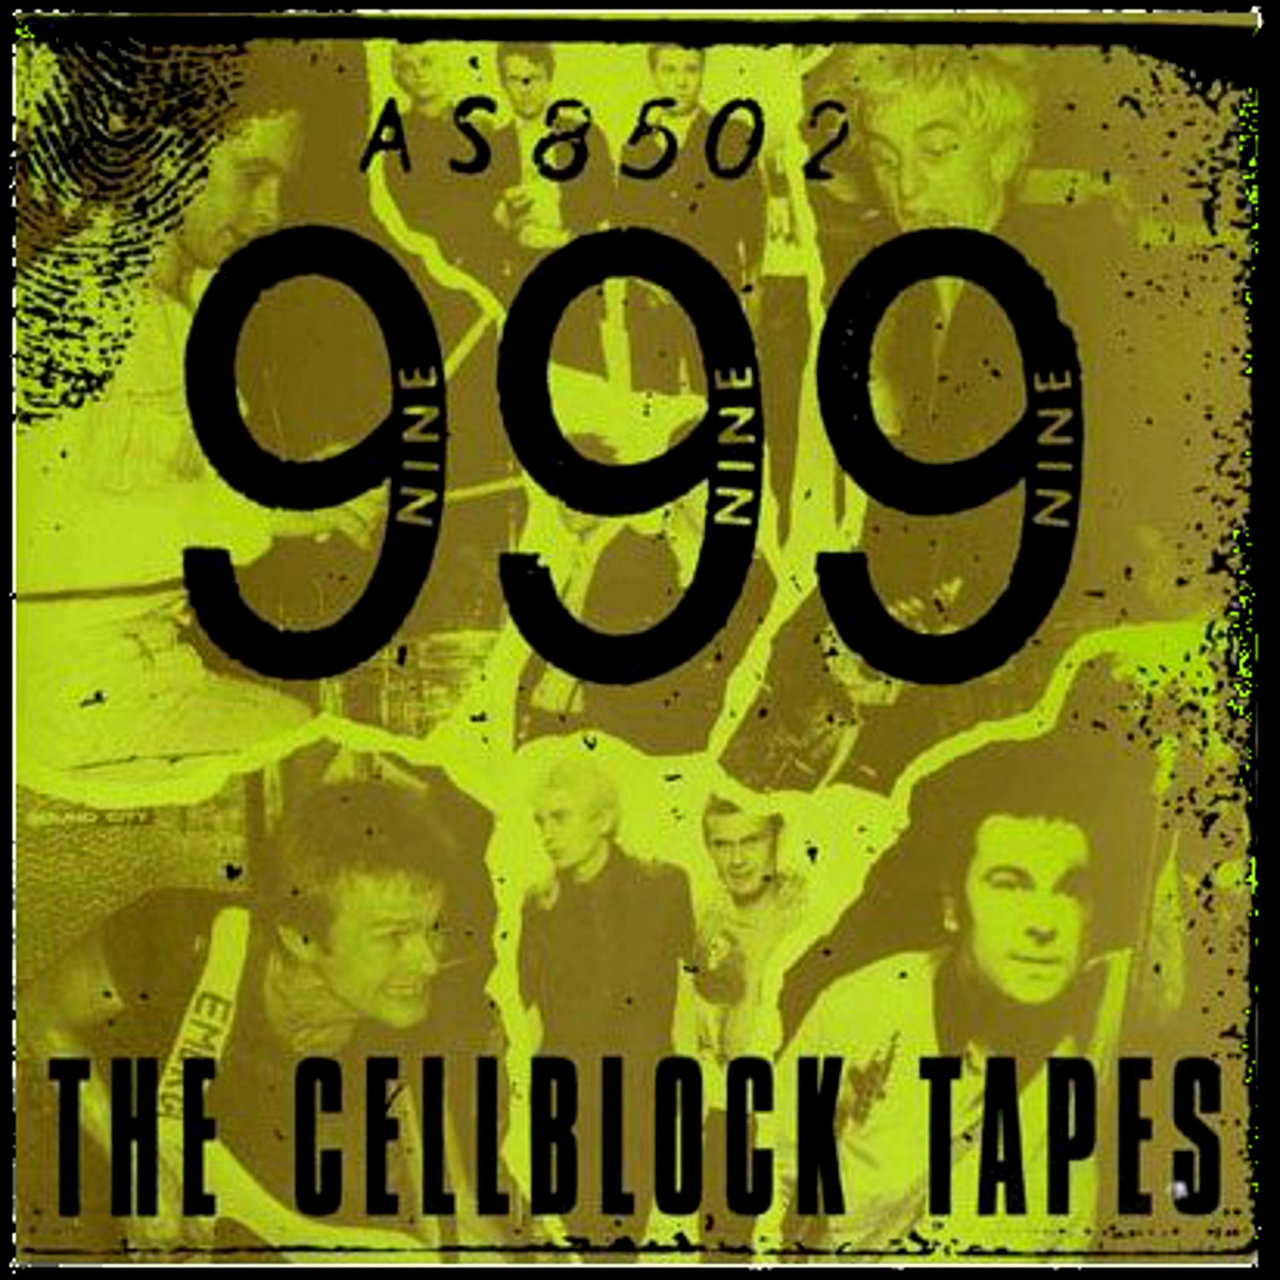 The Cellblock Tapes